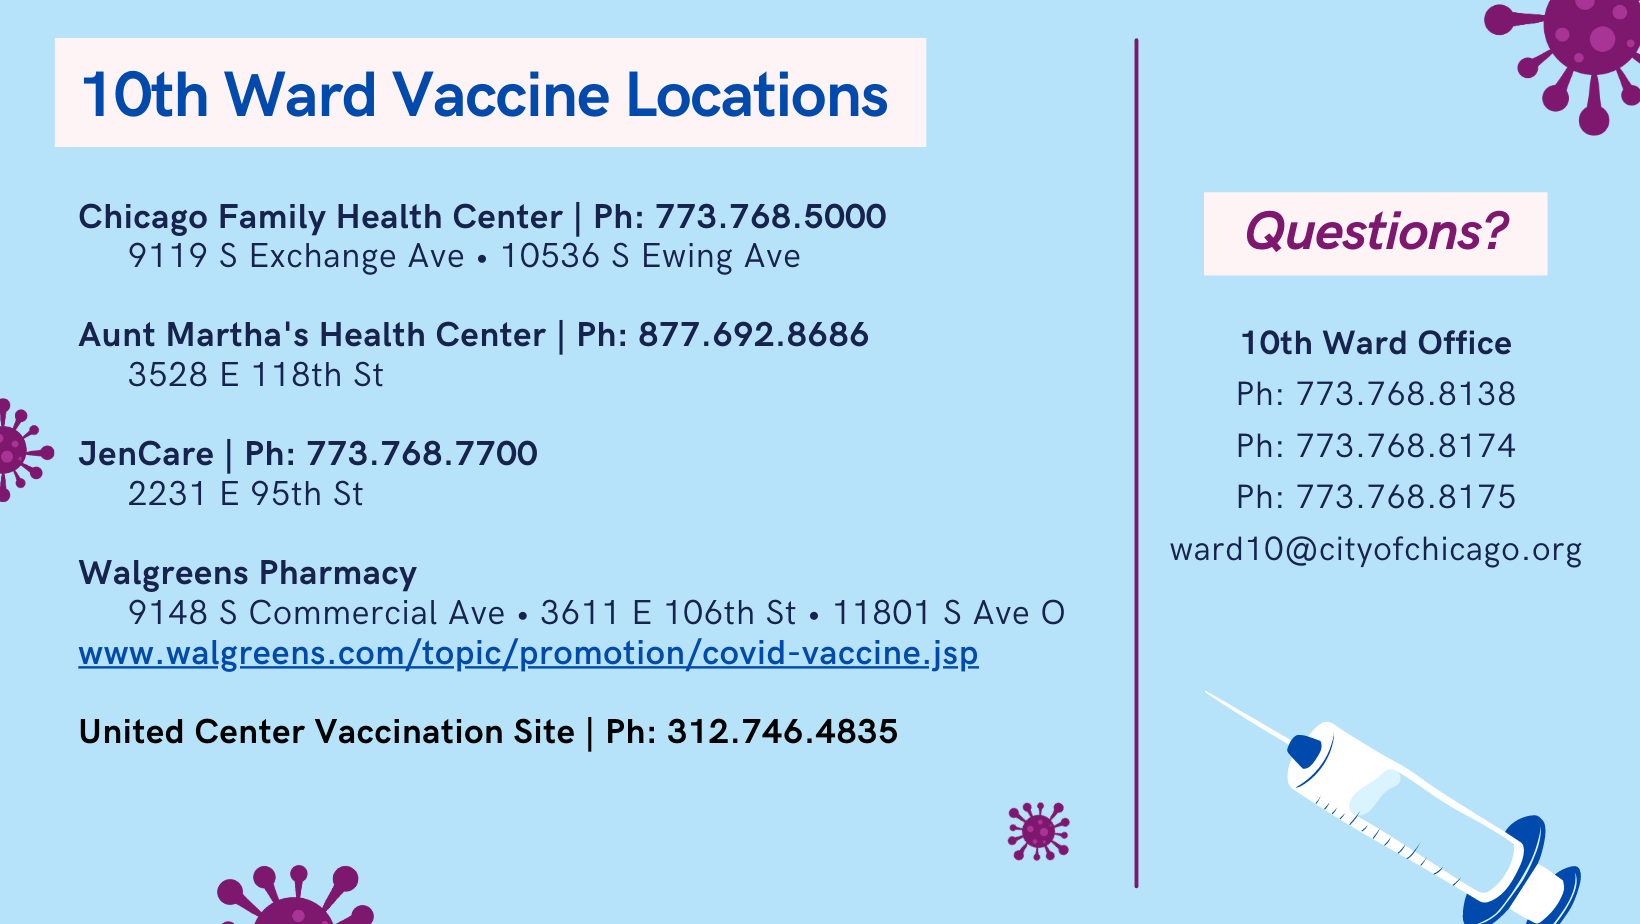 10th Ward Vaccine places